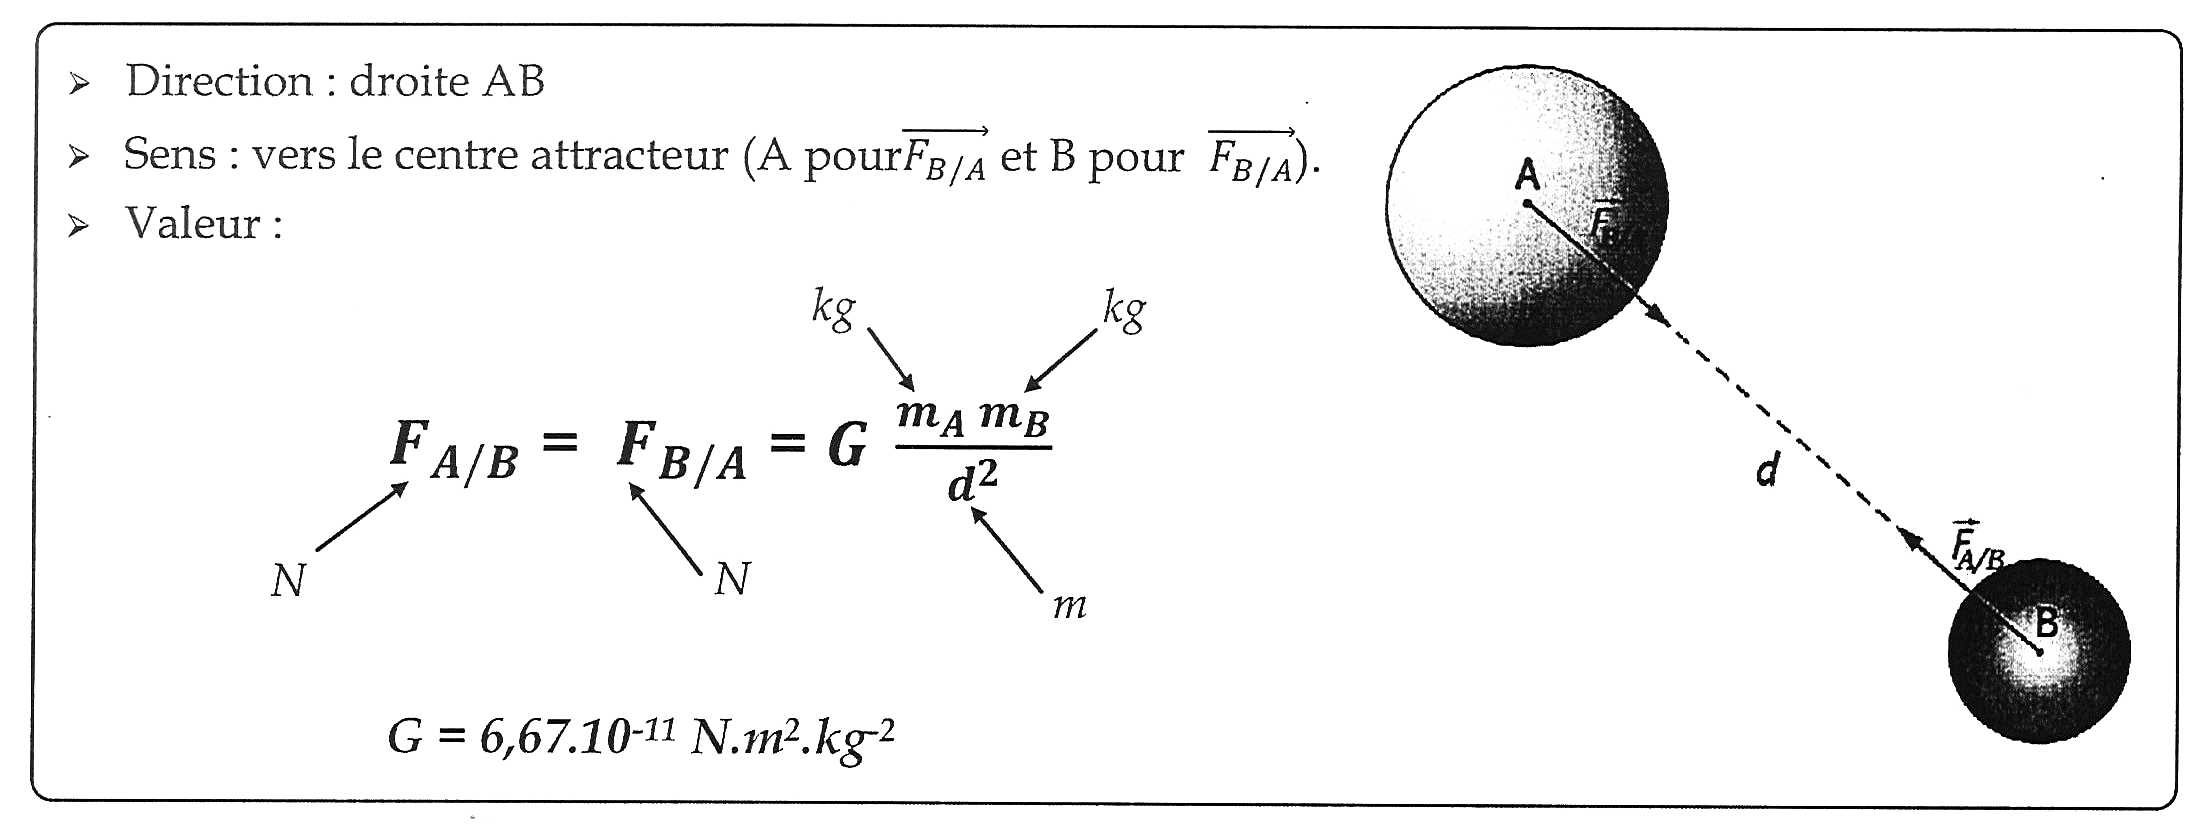 GravitationFigure1.png